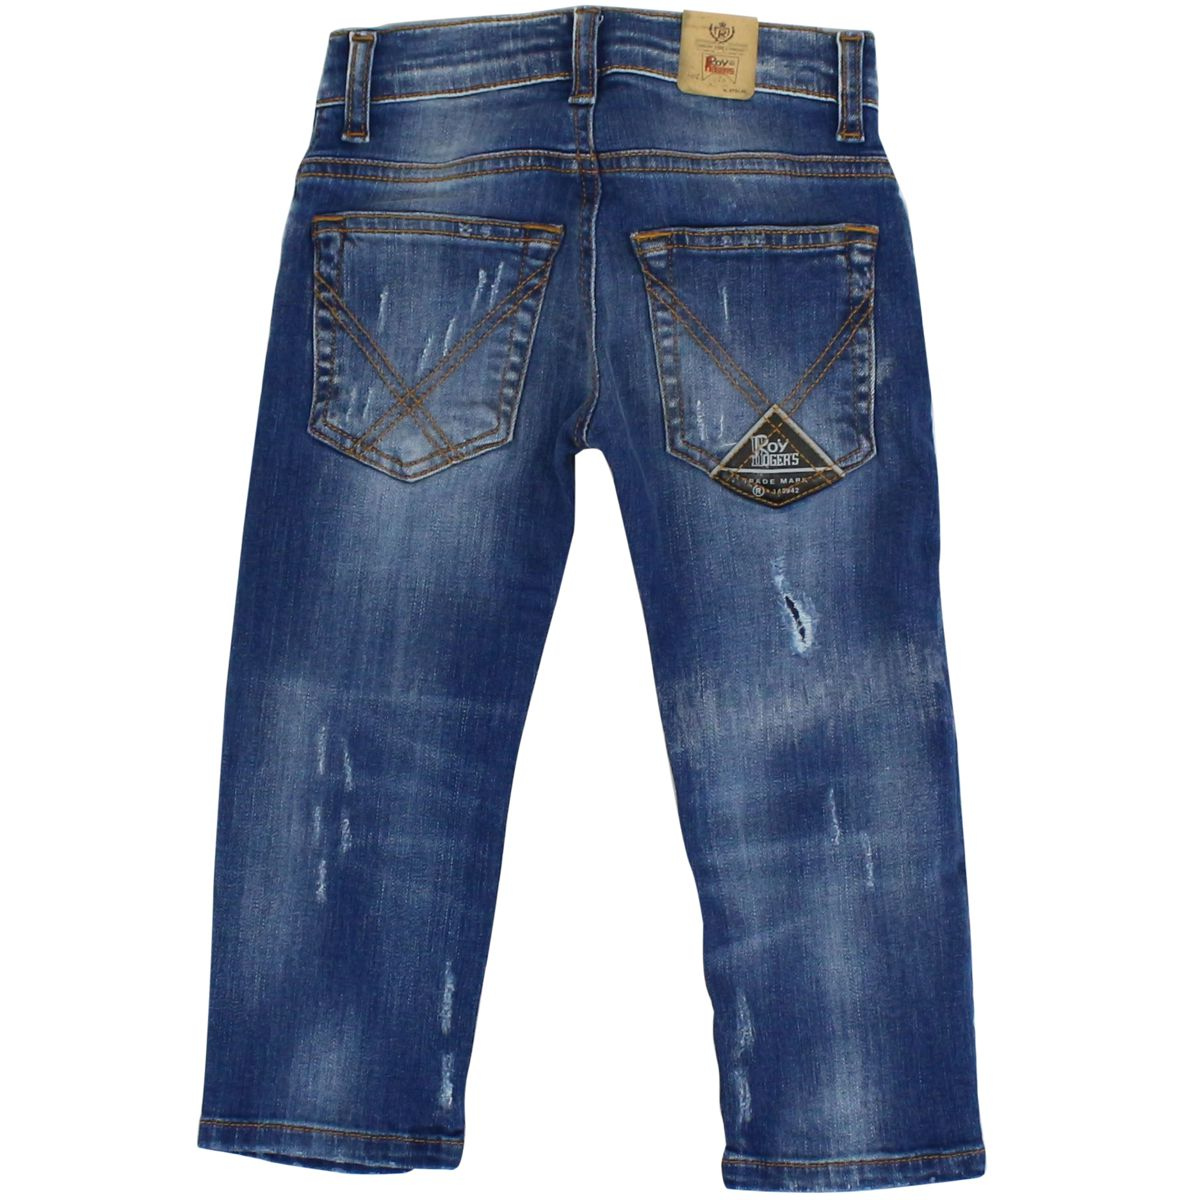 Jeans Emanuele Arwen Medium denim Roy Roger's